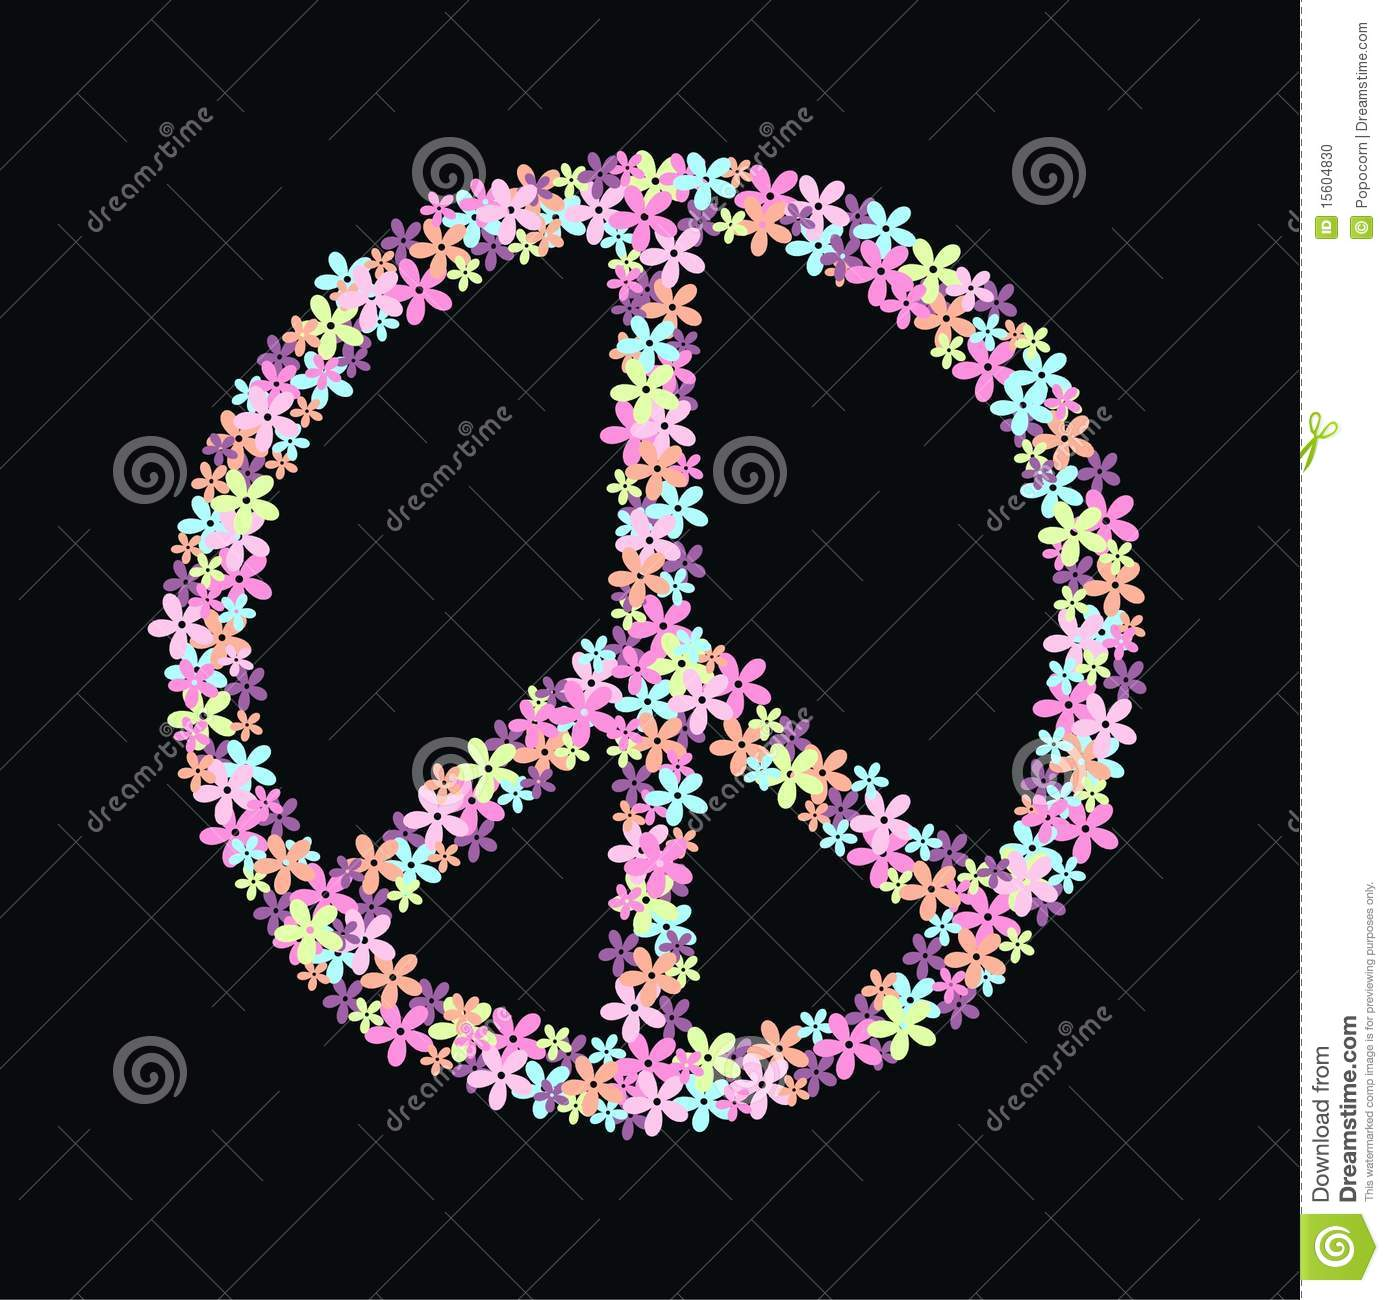 Peace Symbol Of Flowers Stock Photo Image 15604830